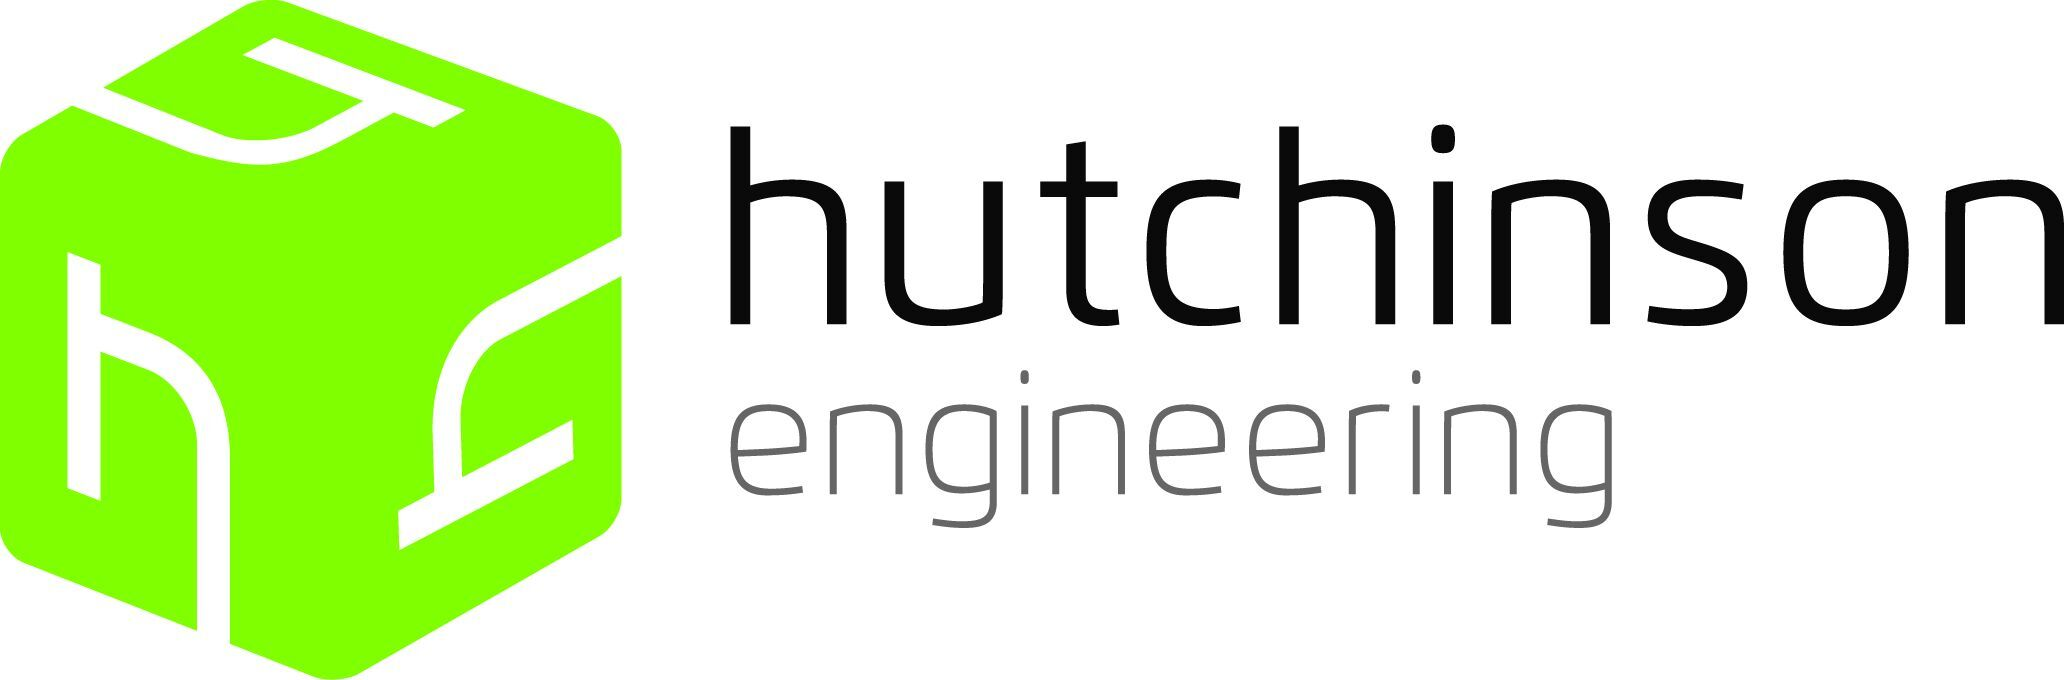 Huchinson Engineering